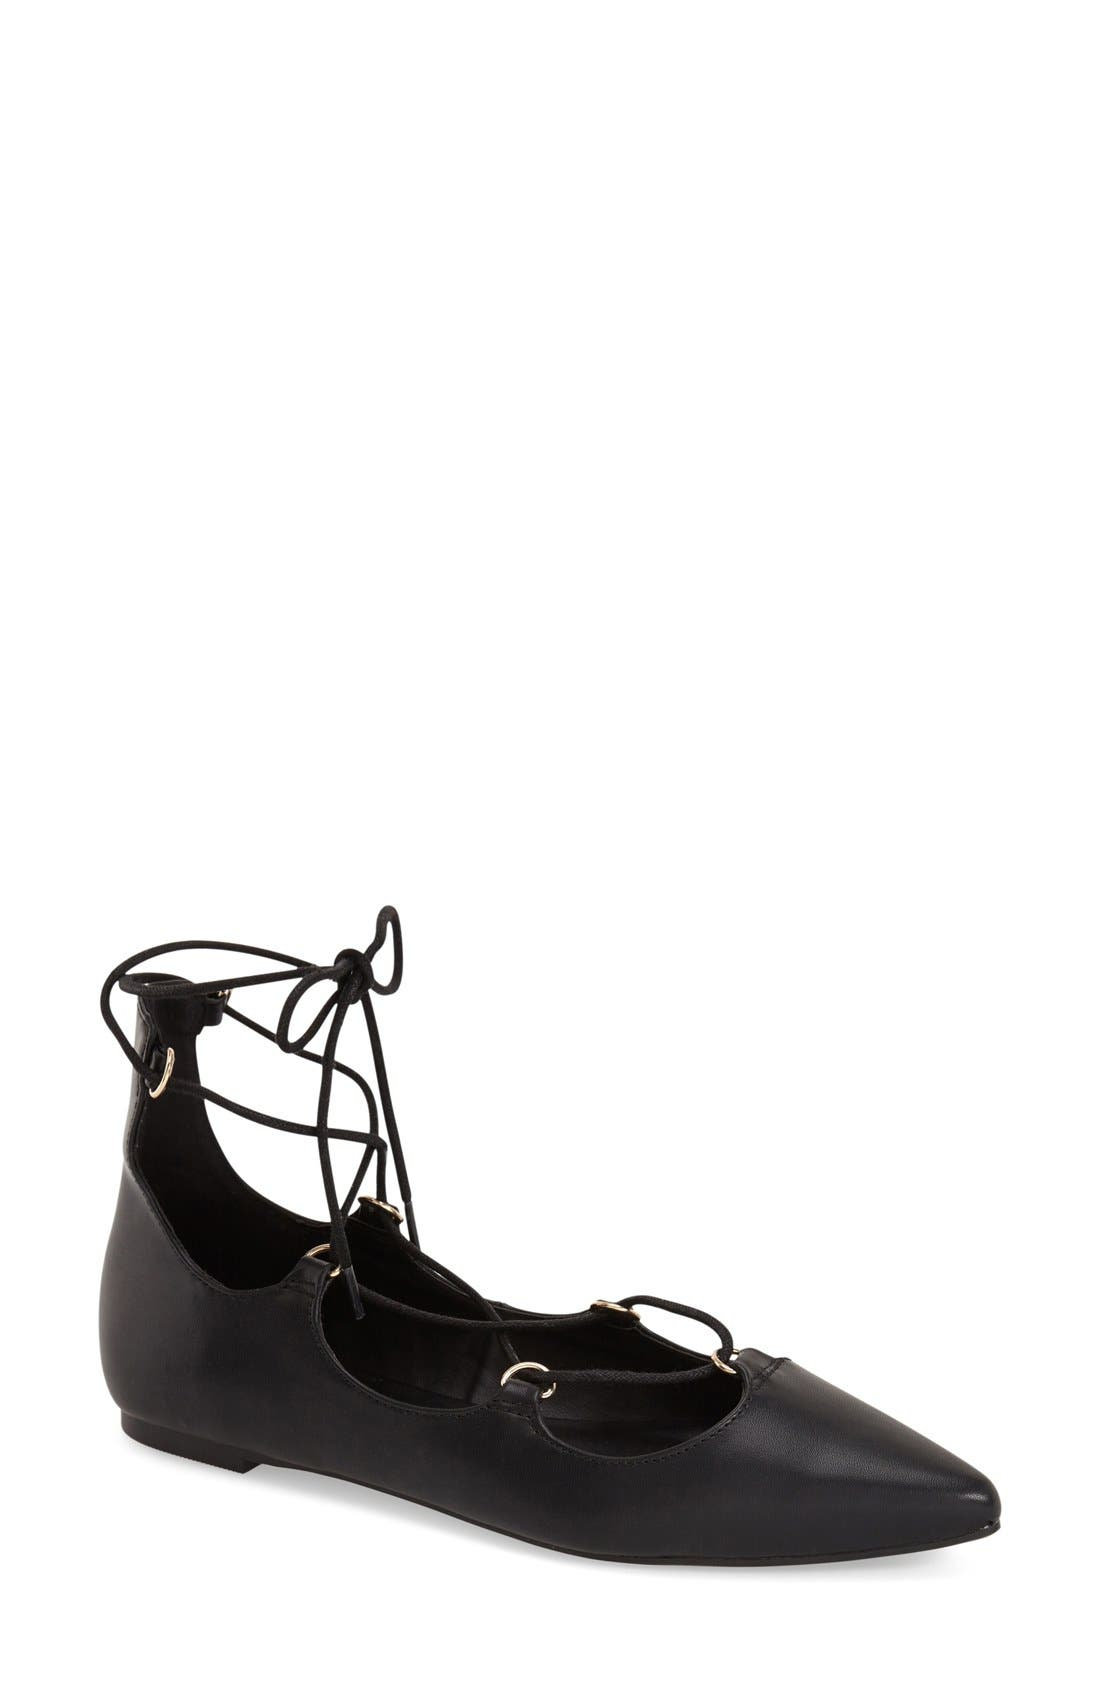 TOPSHOP, 'Fancy' Pointy Toe Ghillie Flat, Main thumbnail 1, color, 001